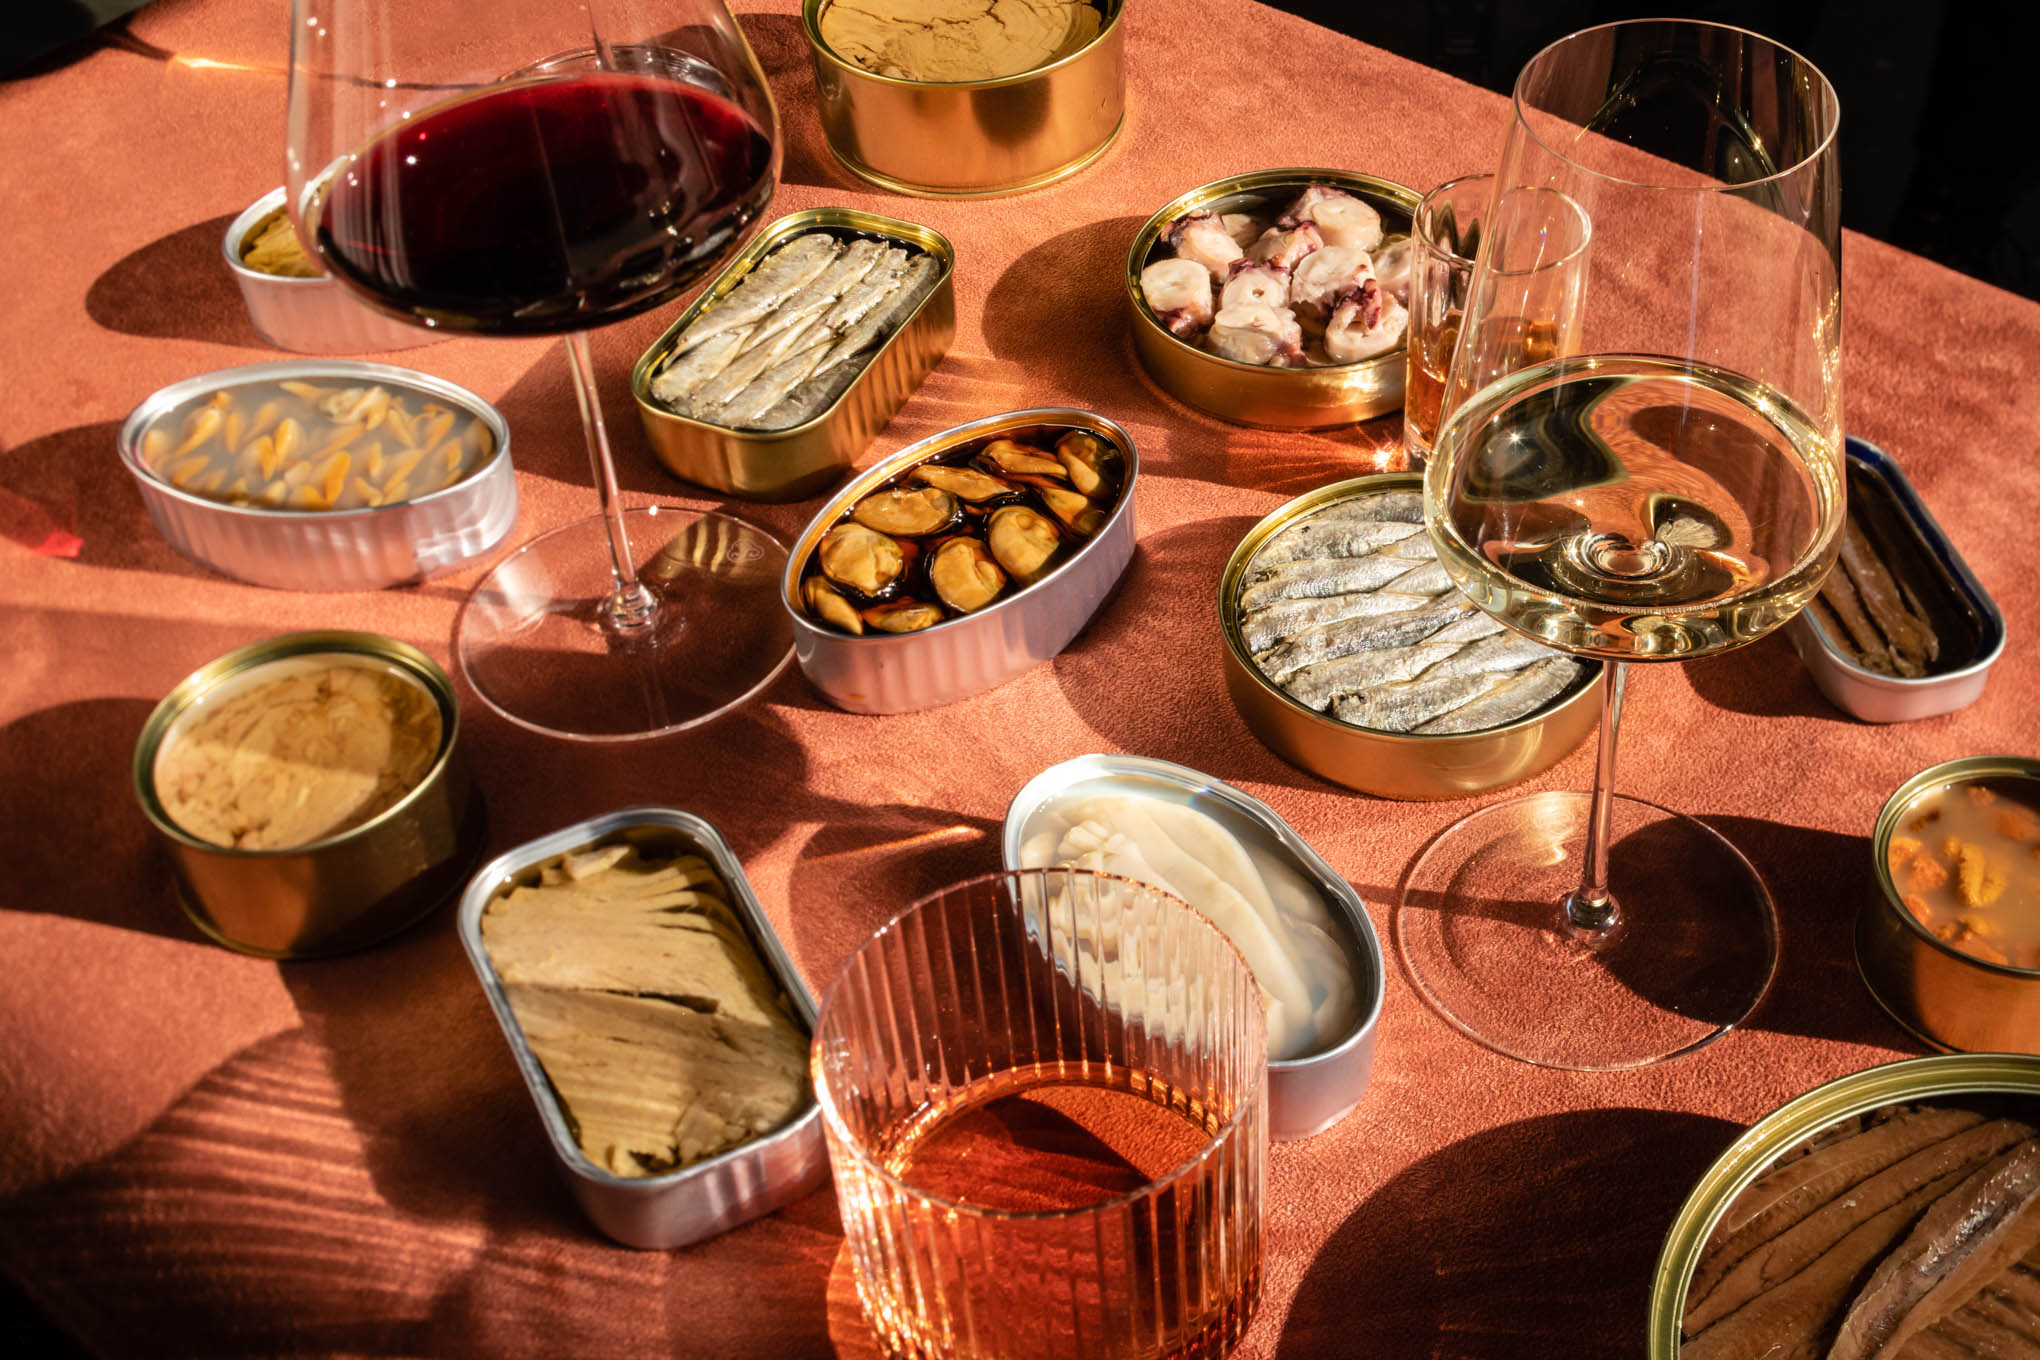 A large variety of seafood conserva cans opened amongst wine glasses on a pink surface